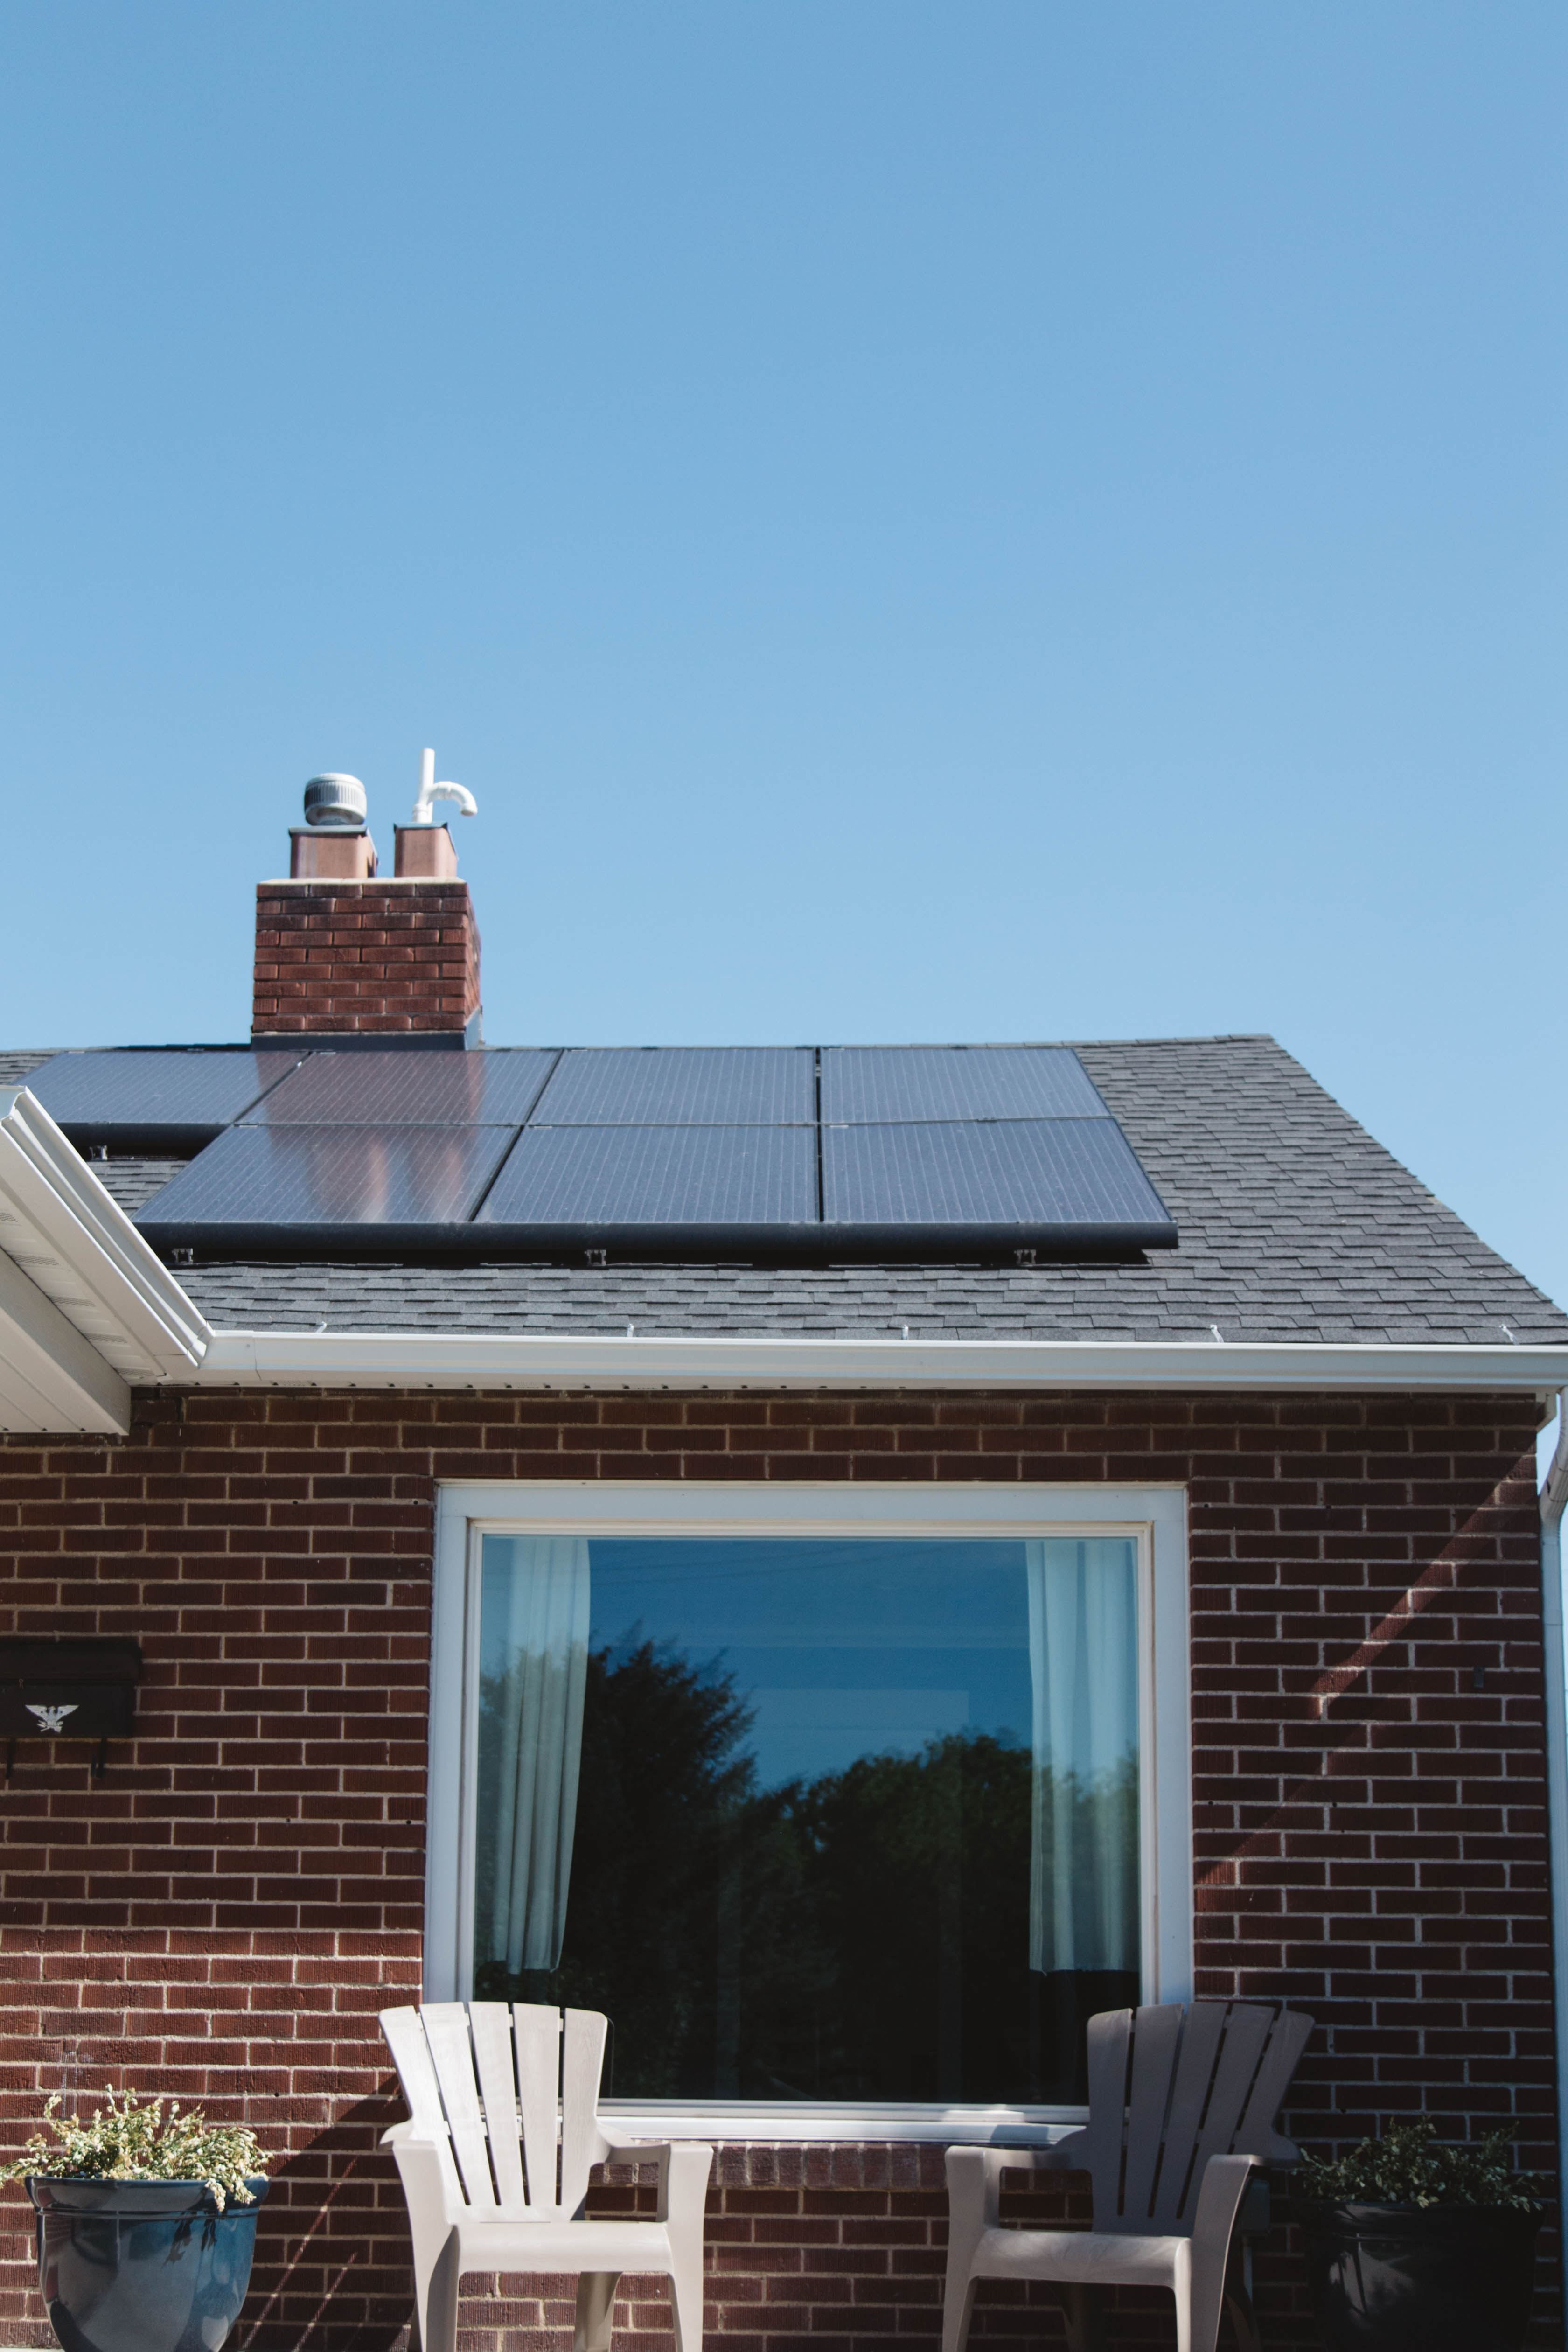 A house with solar panels mounted on its roof